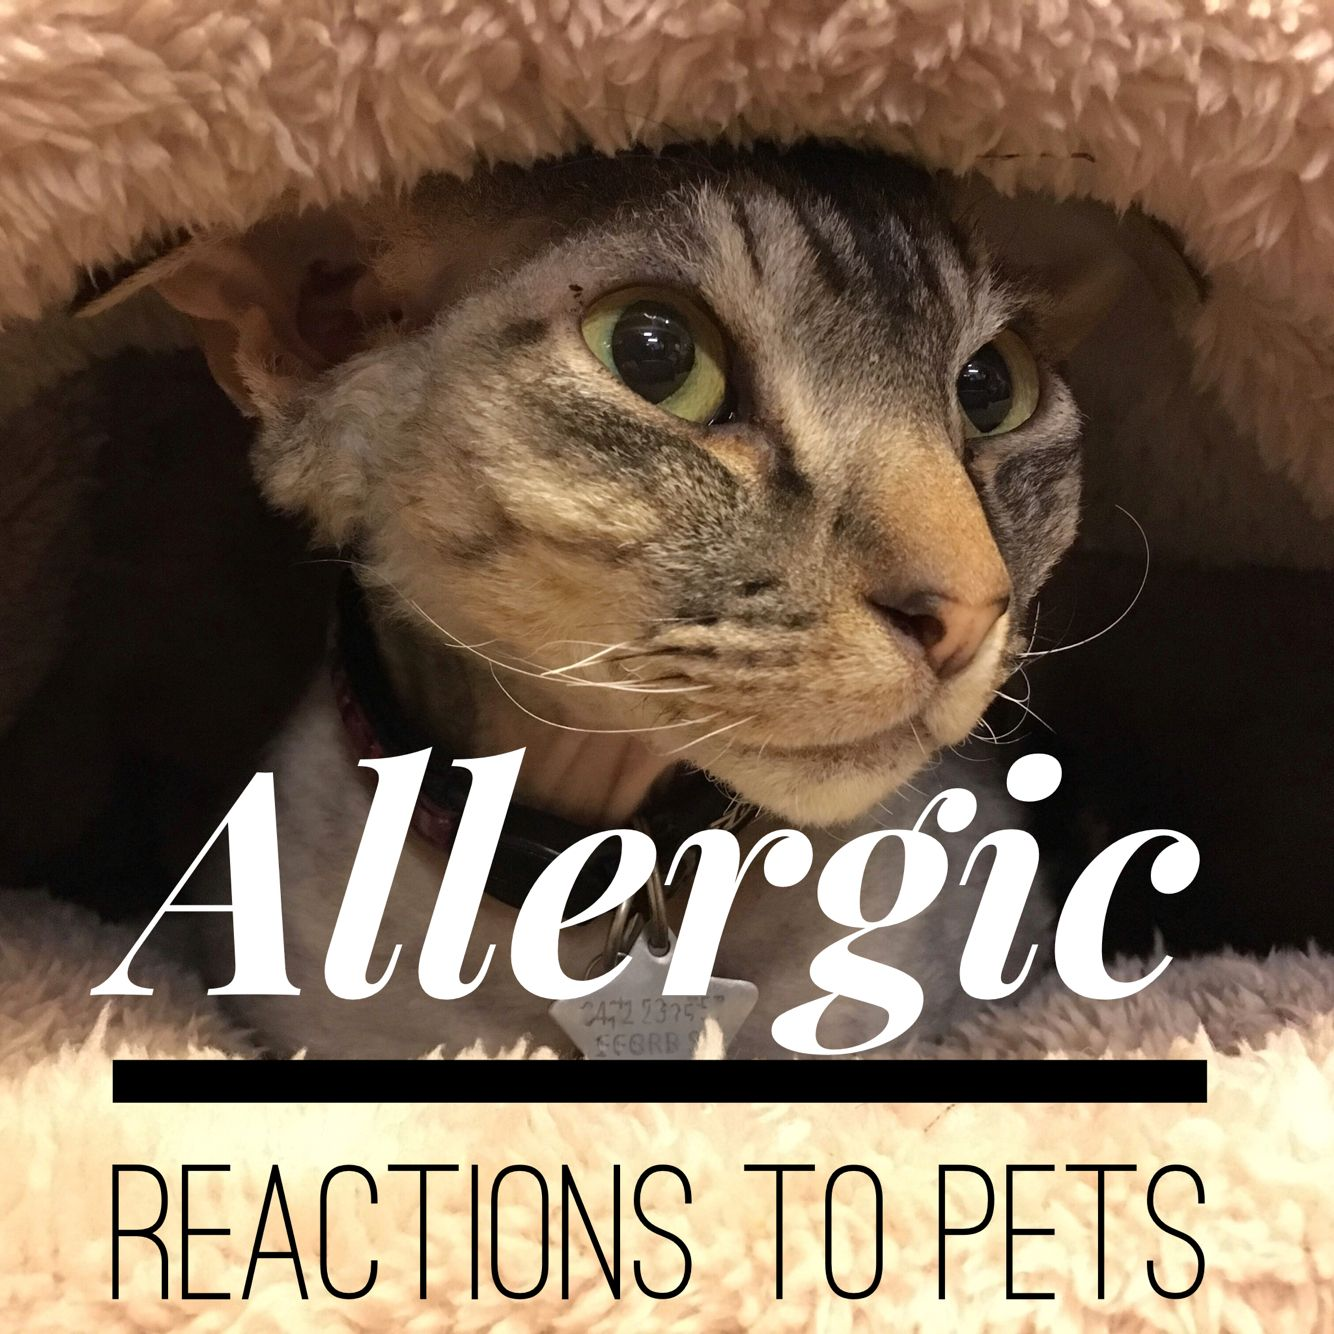 What to do for someone with an allergy to dogs or cats